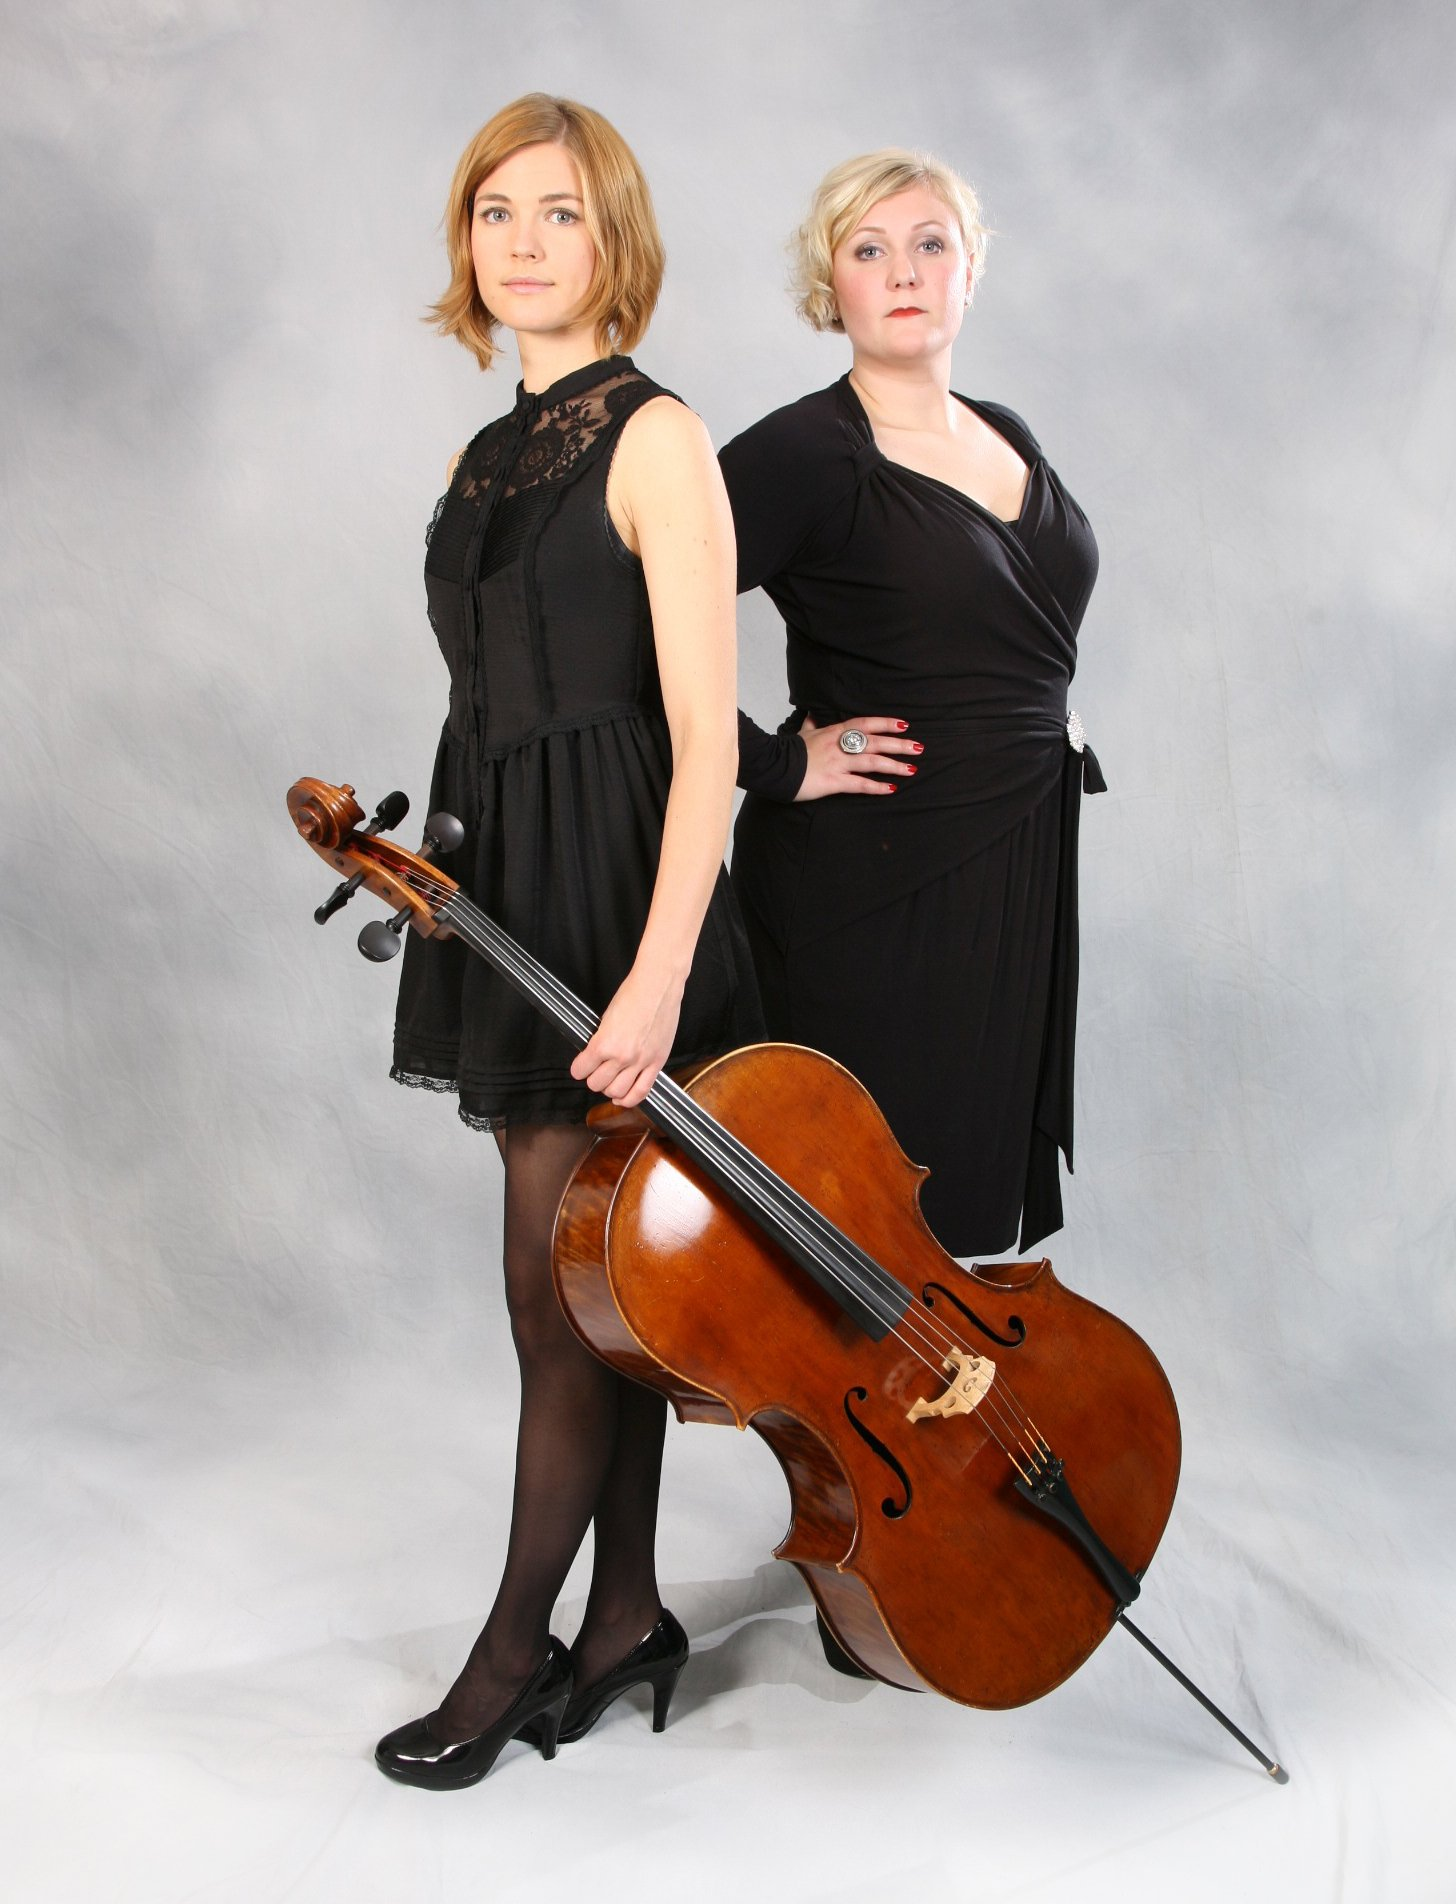 Voice and Cello, En Vokalist & En Cellist